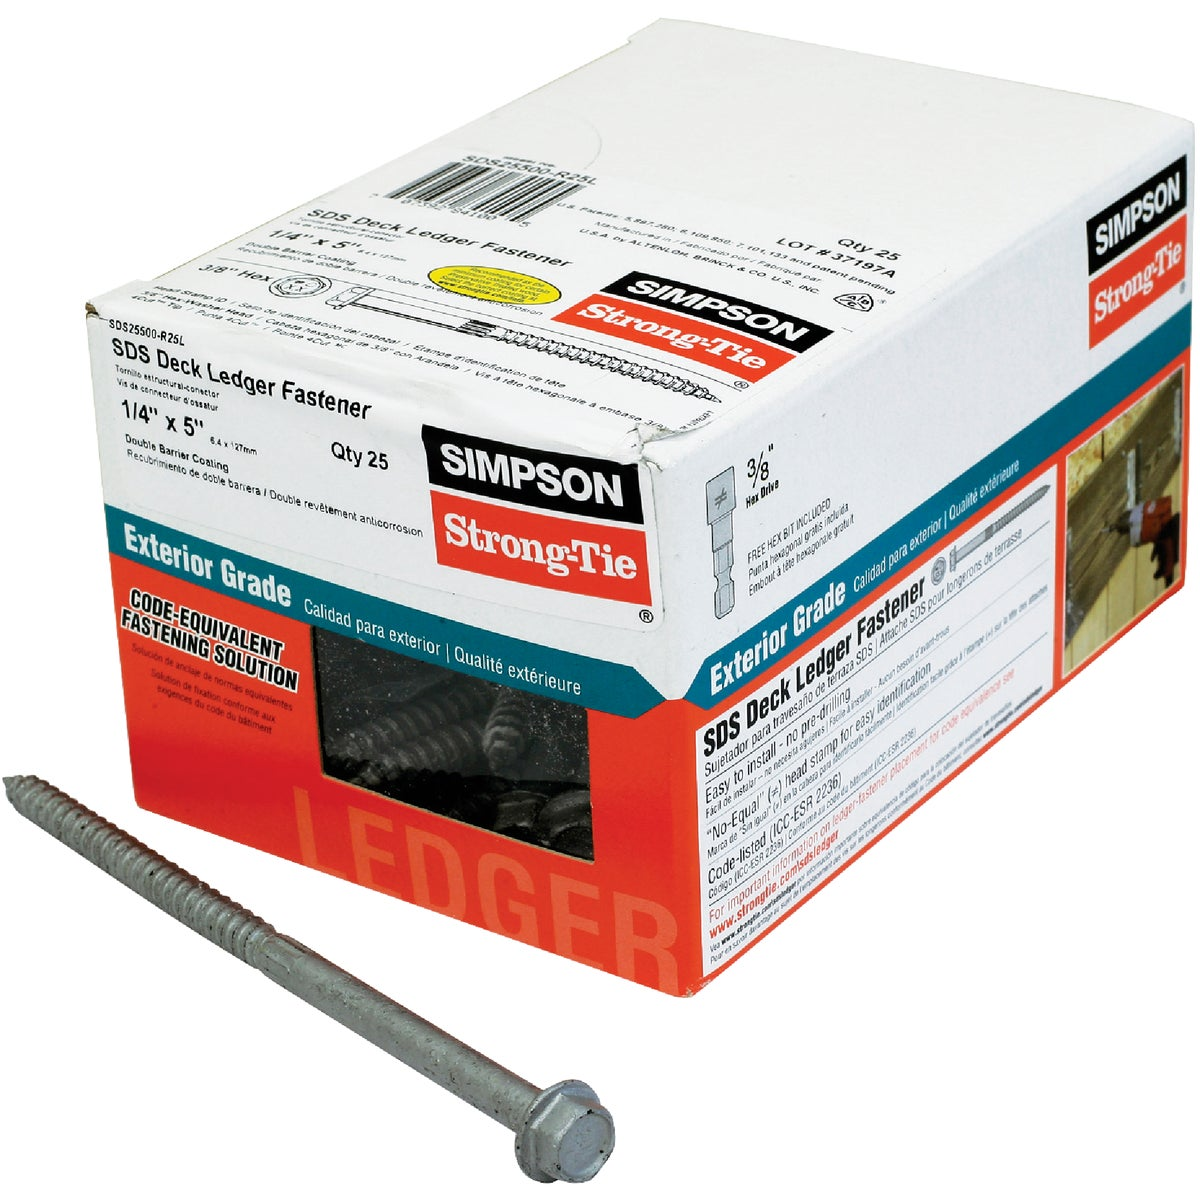 25PC 1/4X5 WOOD SCREW - SDS25500-R25L by Simpson Strong Tie